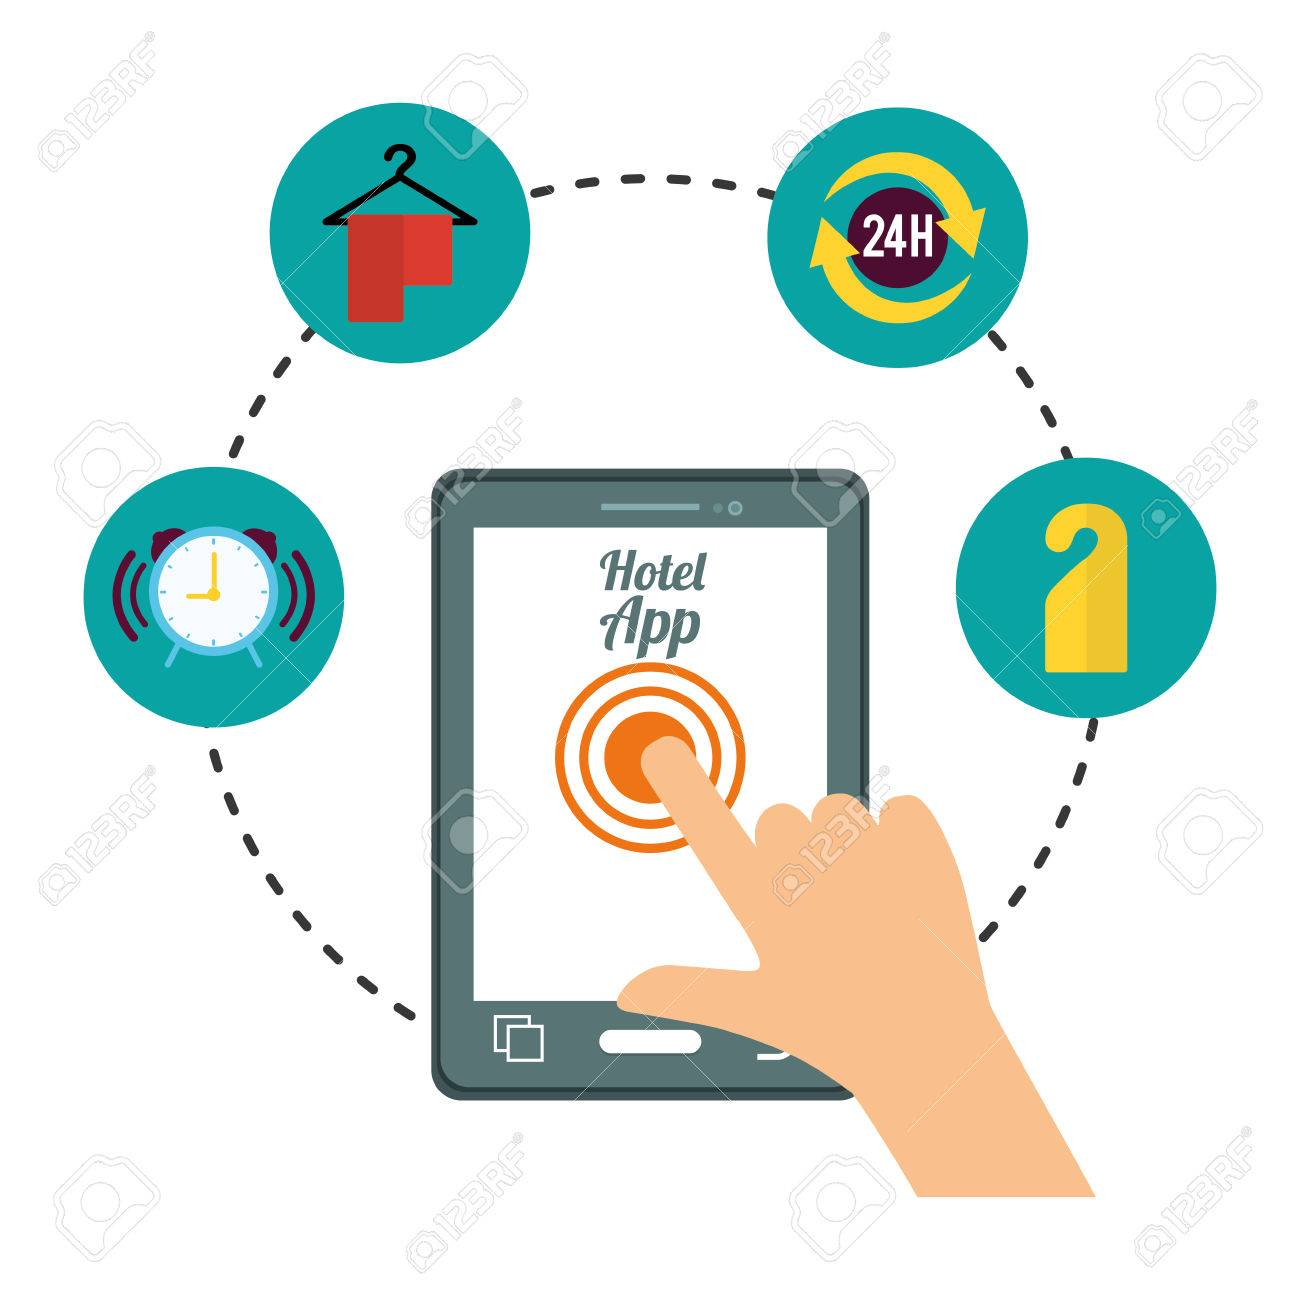 Smartphone hand and hotel apps icon set  Service technology media